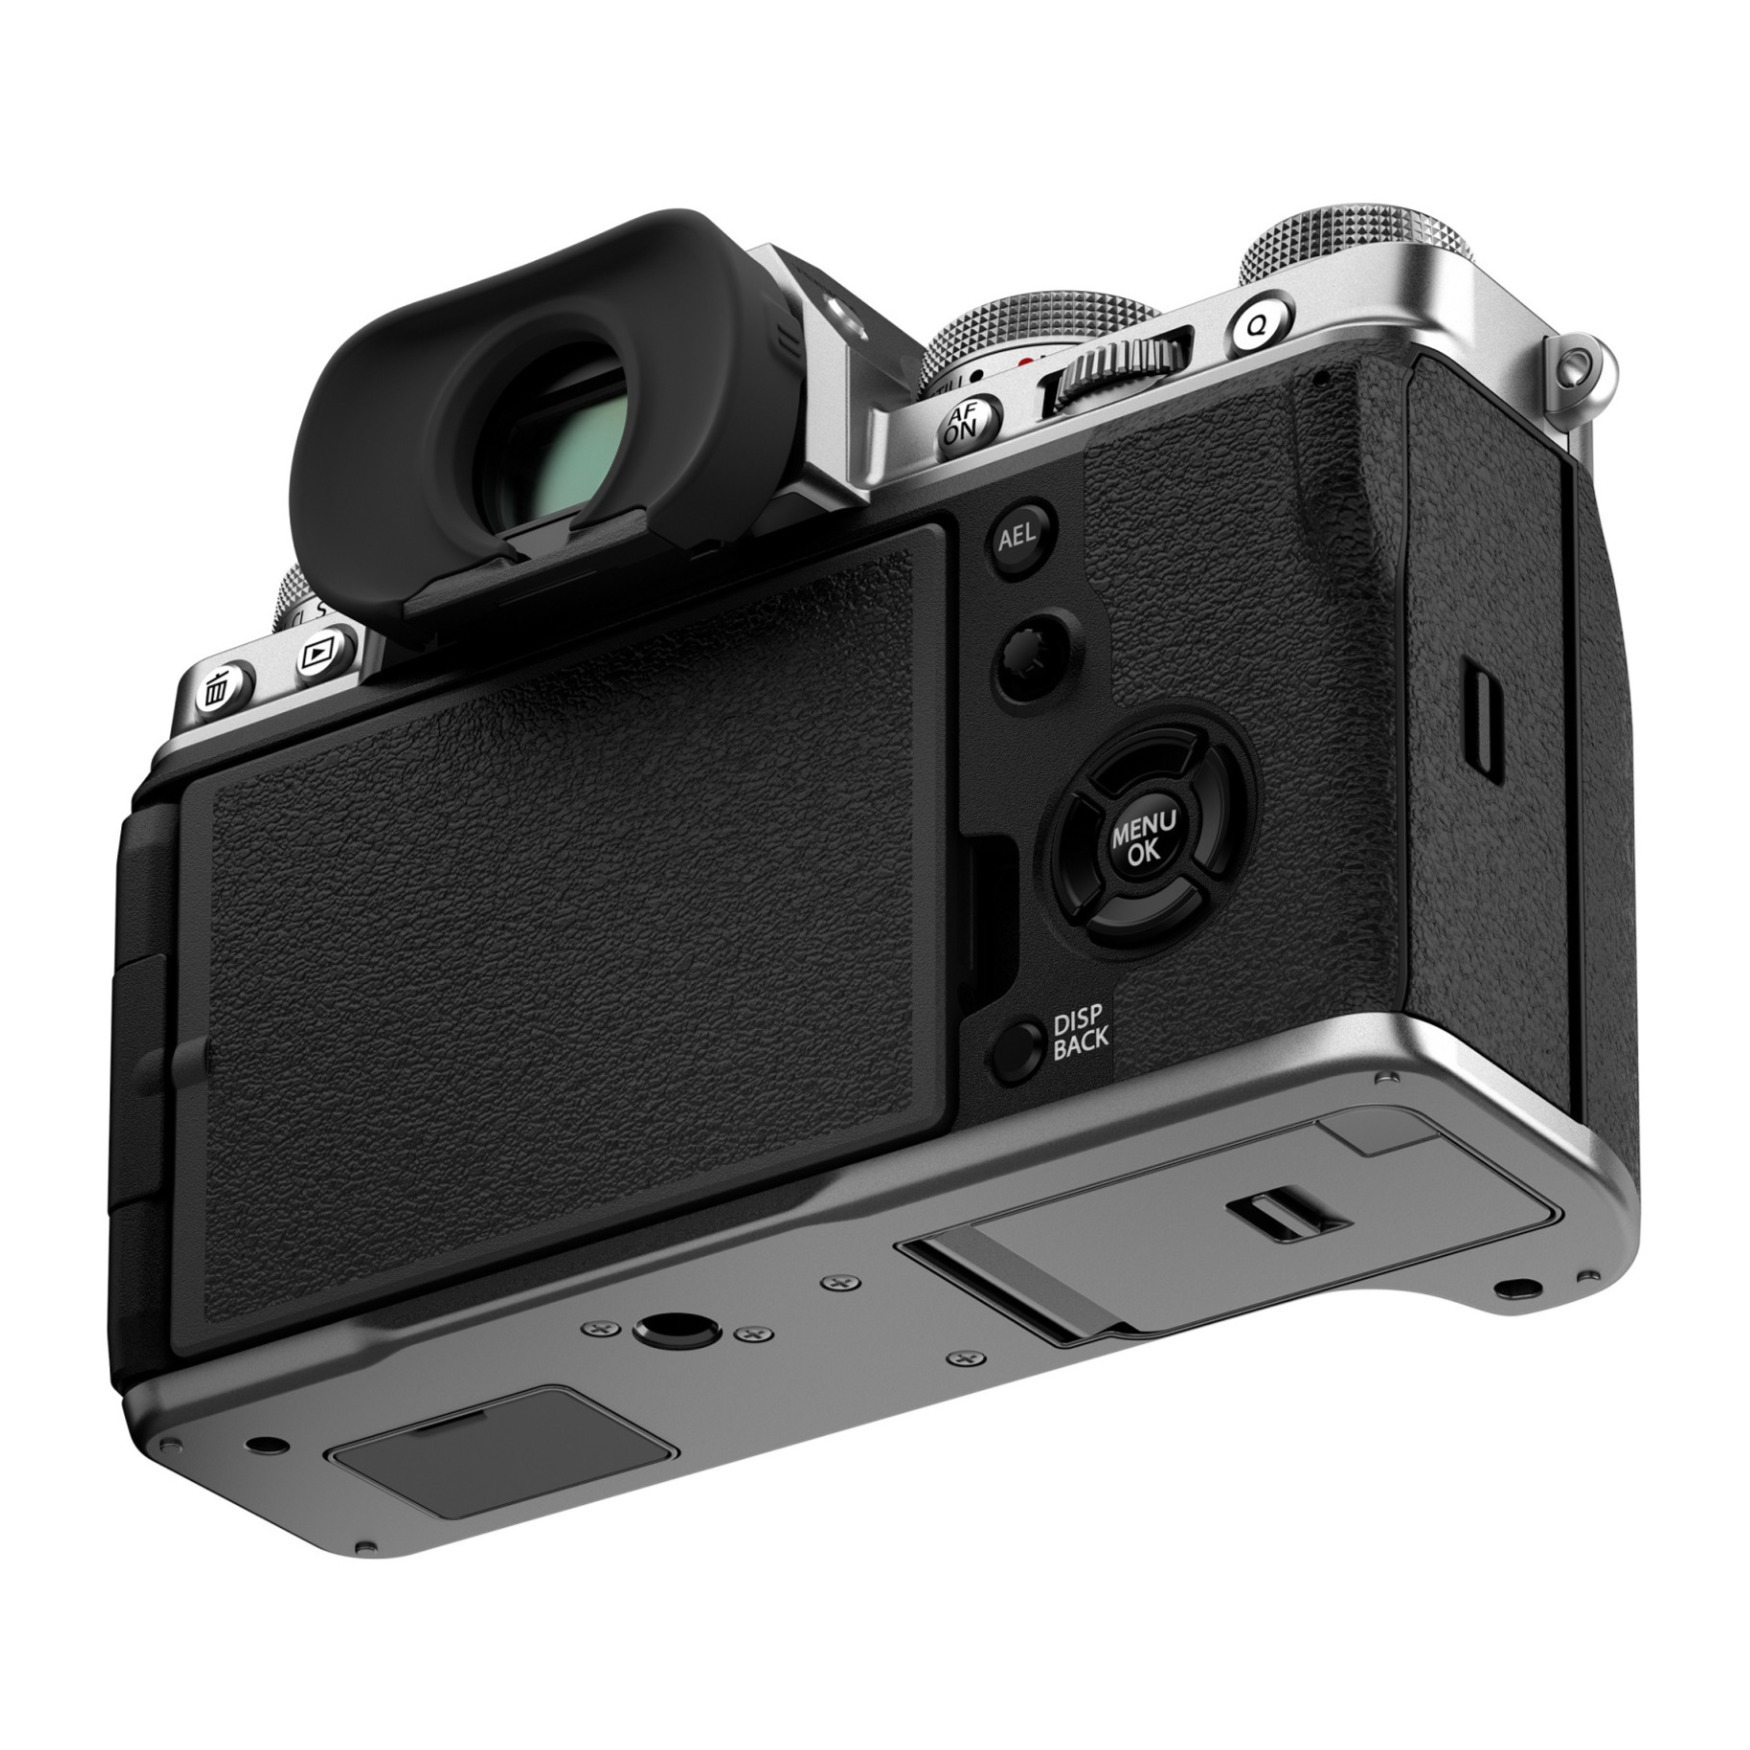 Fujifilm X-t4 Camera Press Release And Photos Leaked  Updated